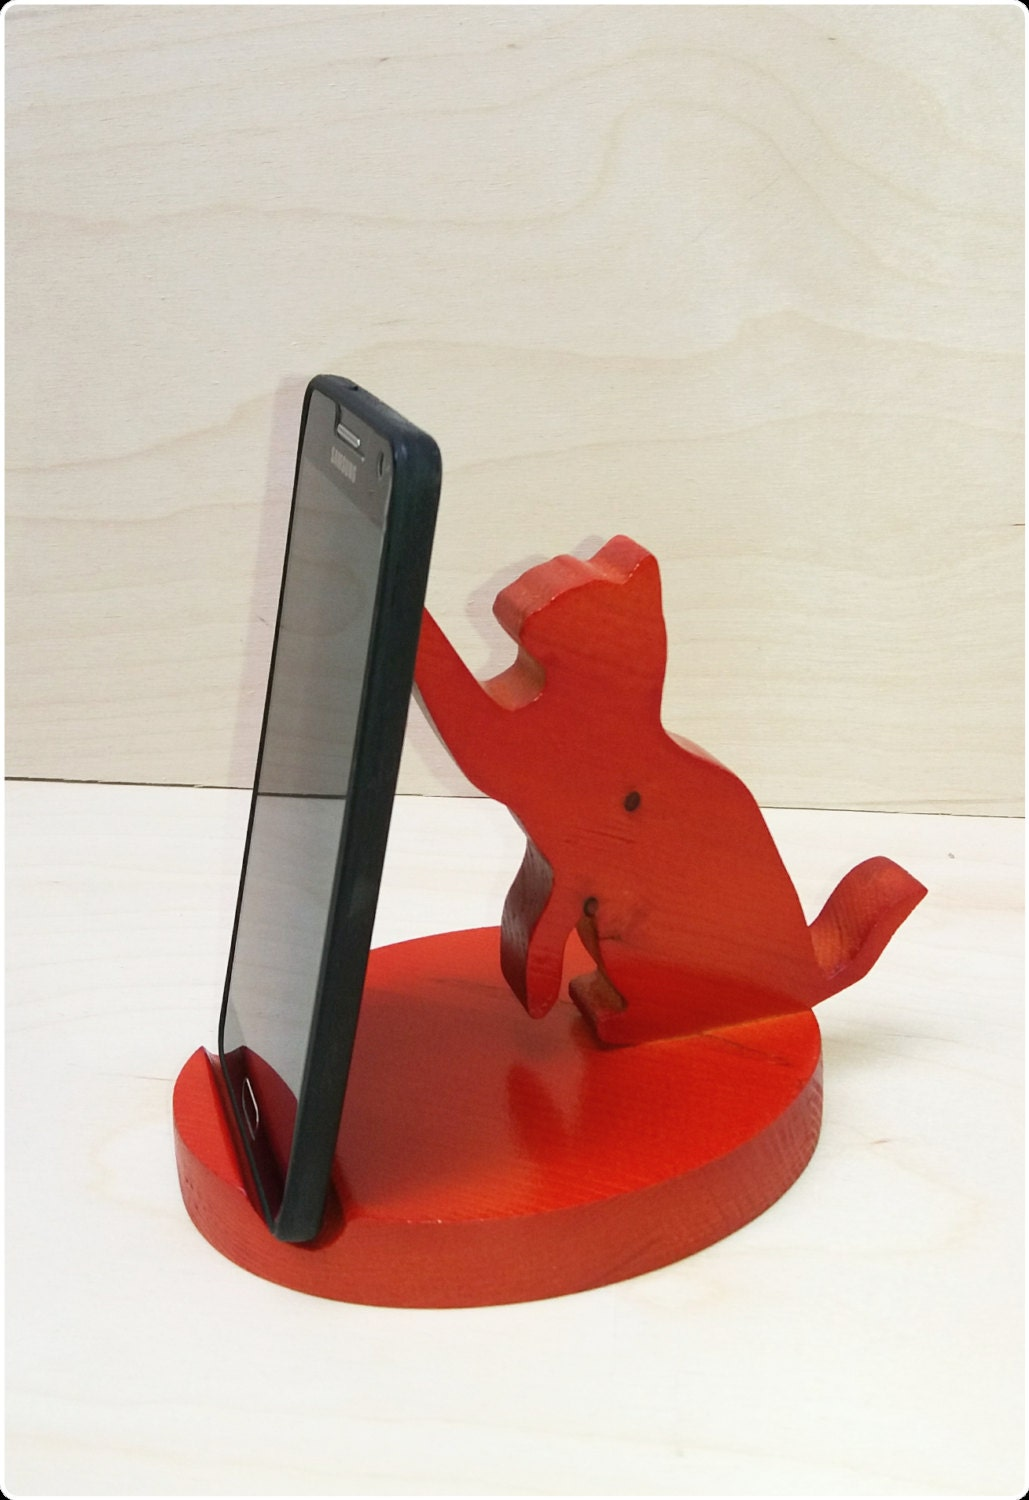 Sale wooden phone holder cat stand by